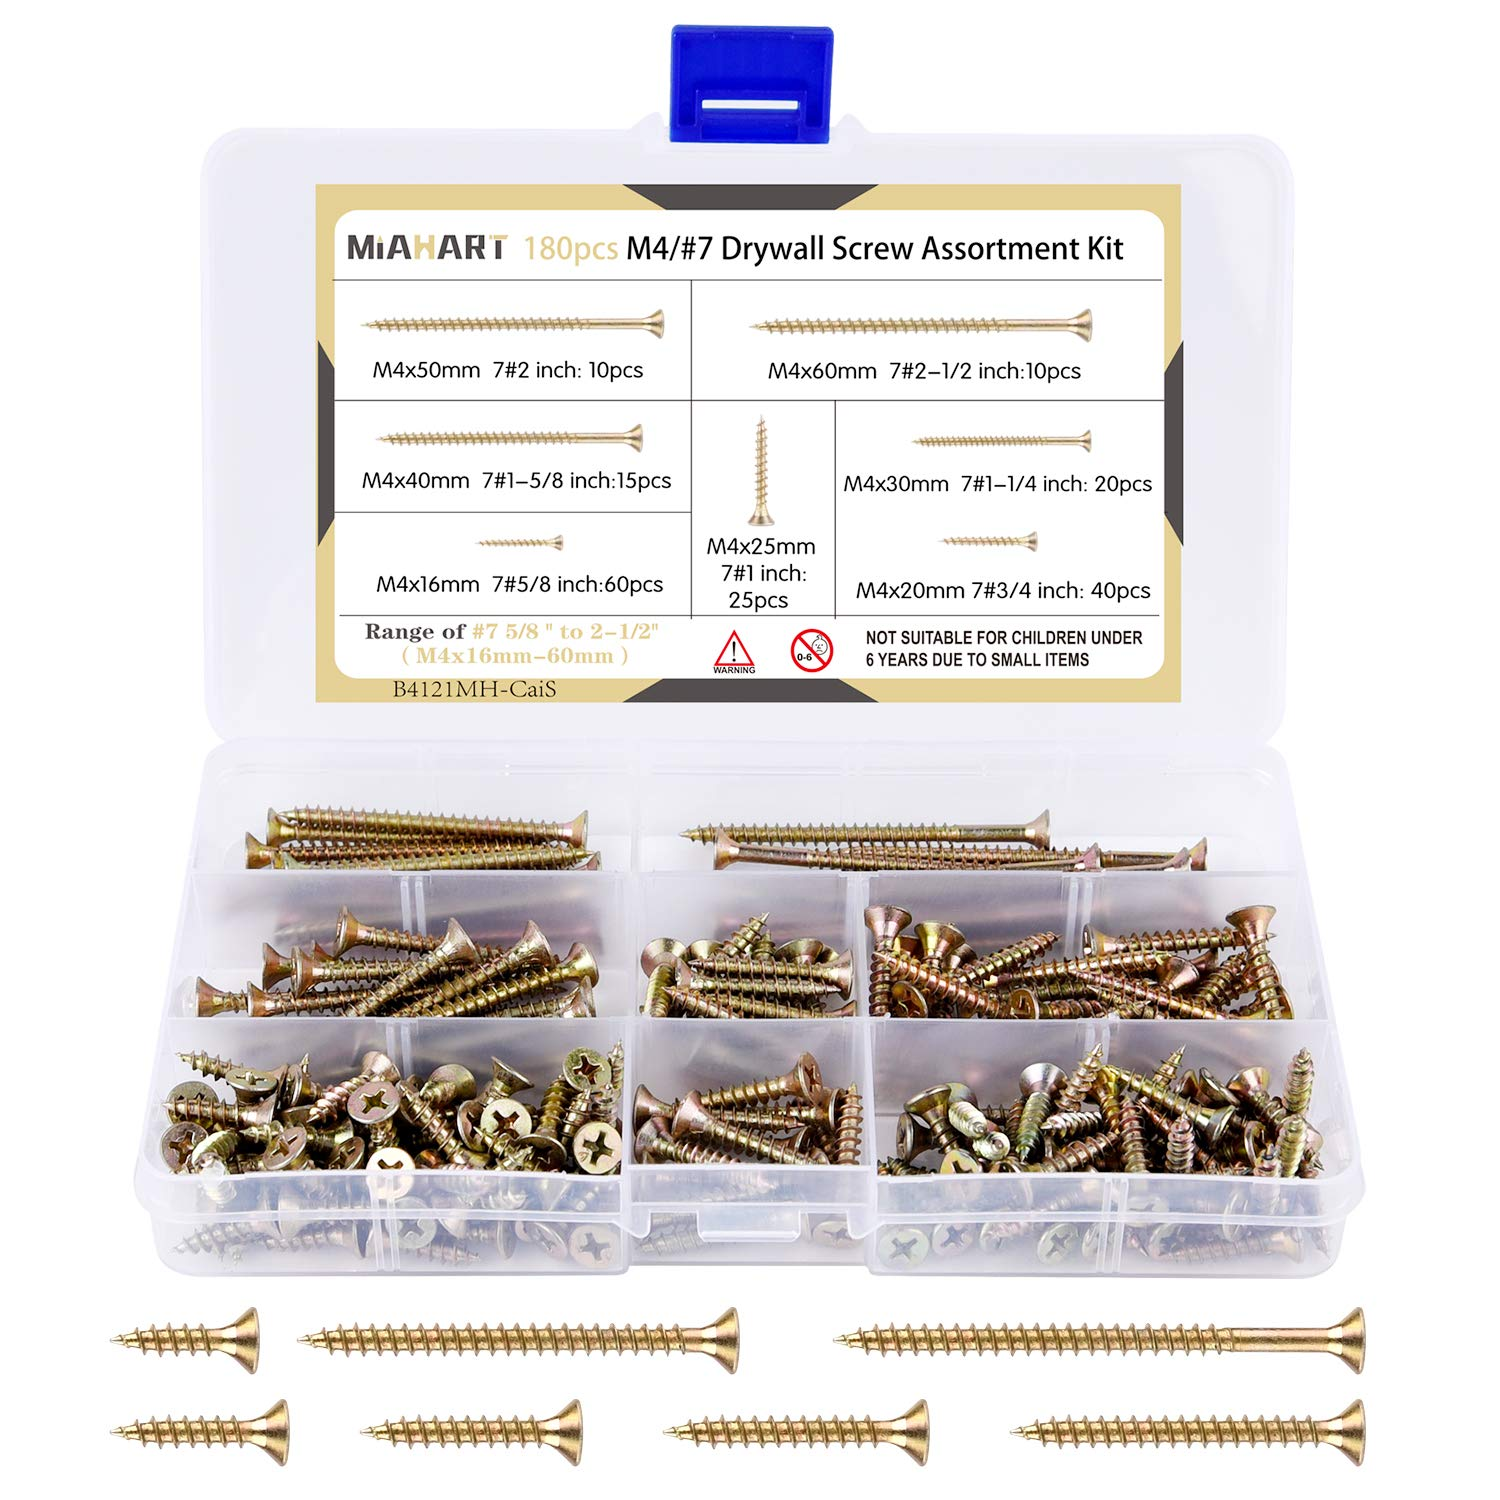 MIAHART 180 Pcs #7 Zinc Plated Drywall Screw Assortment Thread Sharp Point Self Tapping Screws Drywall Screws for Drywall Sheetrock Wood Furniture and Cabinet (Zinc Plated)